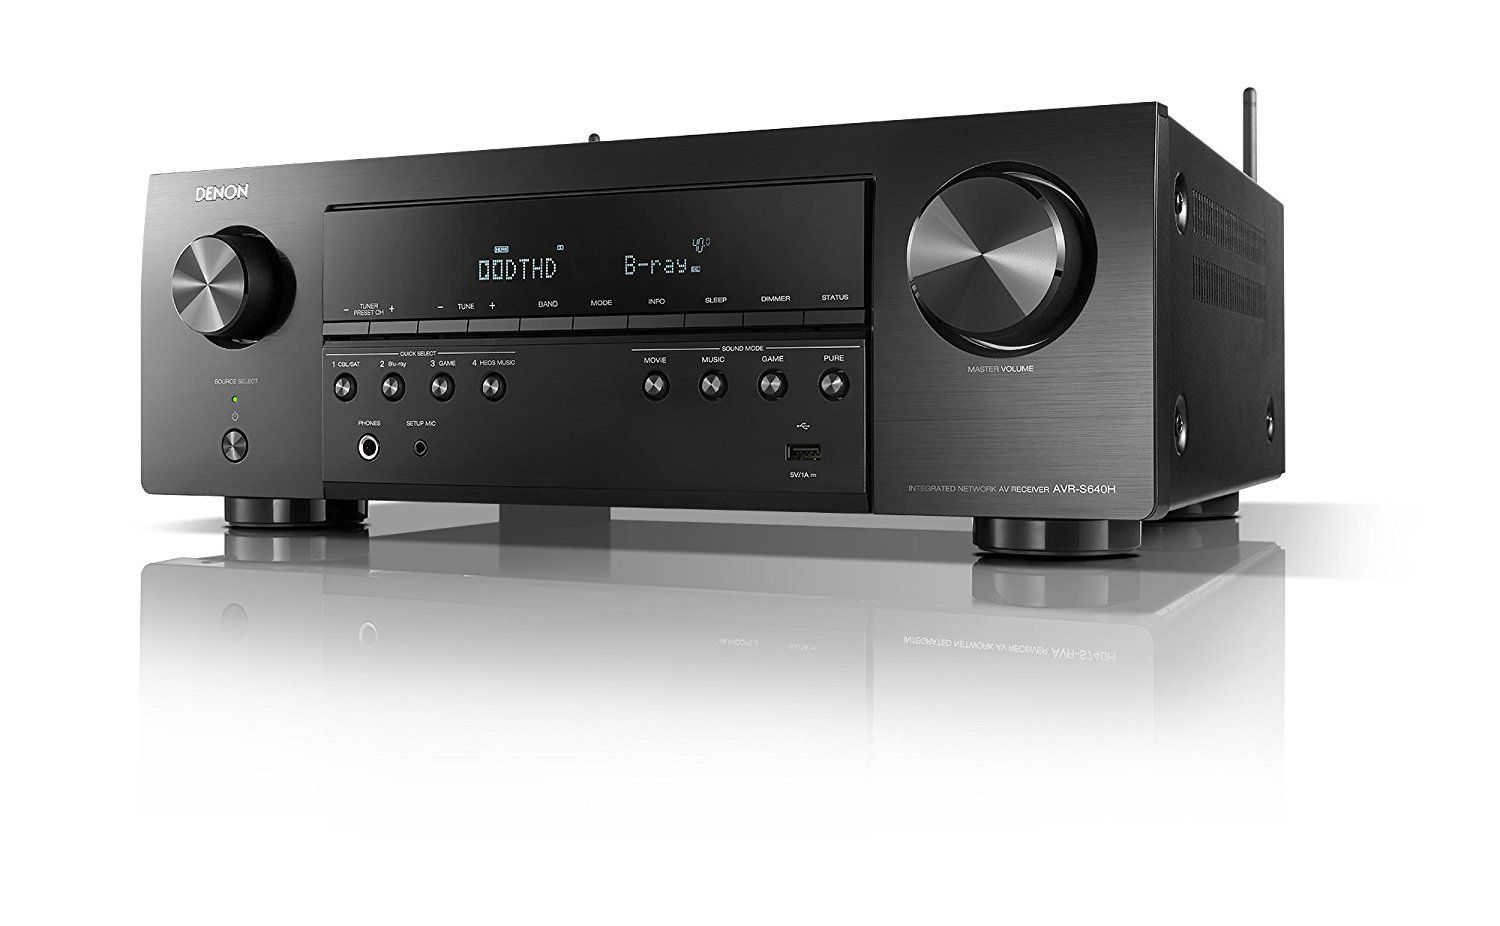 Denon Denon AVR-S640H Reciever | Products | Home theater